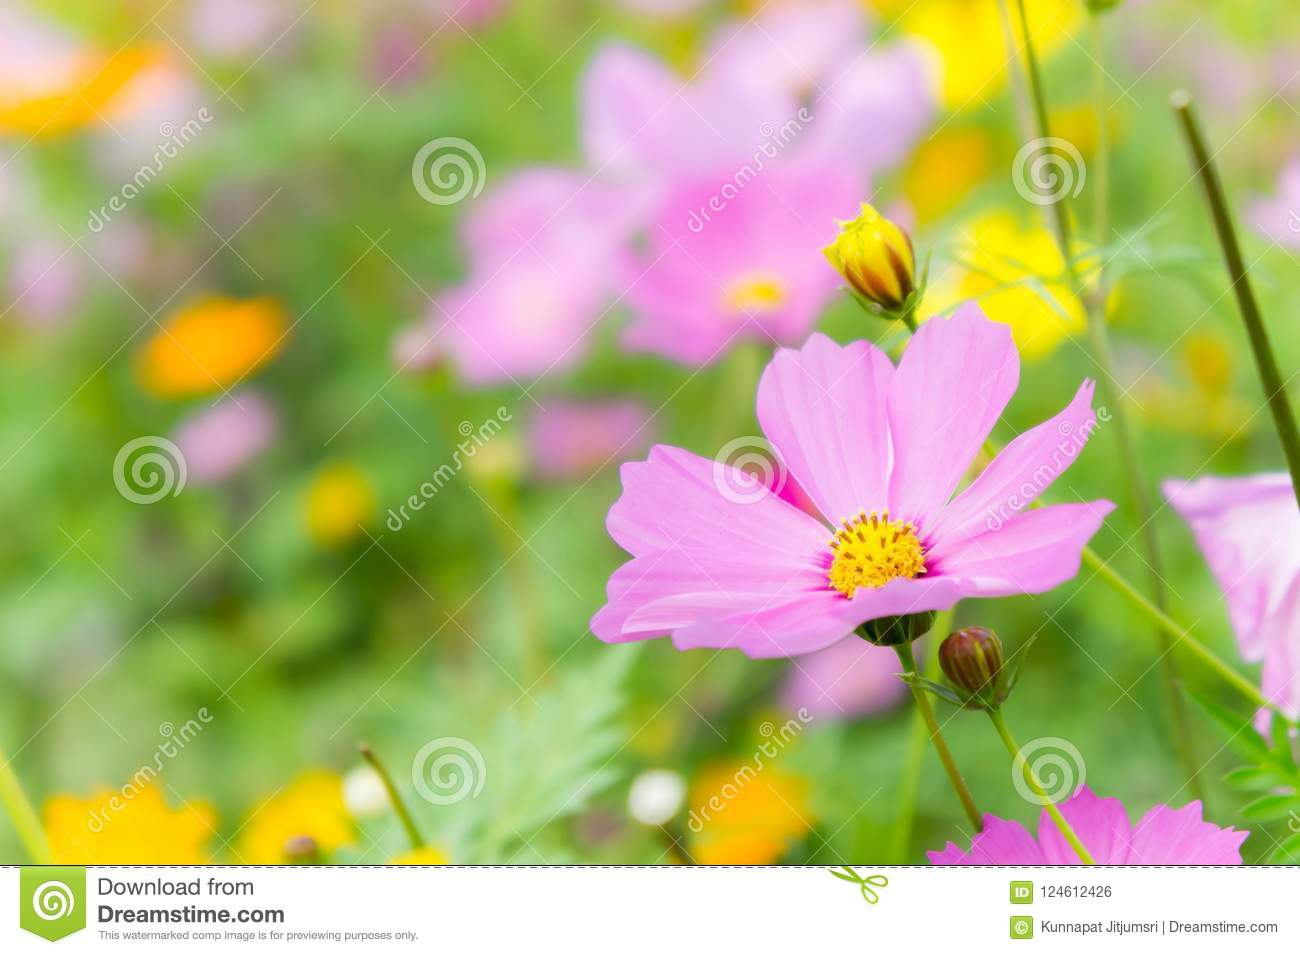 The nice day and nice flowers cosmos colorful on field pink flowers download the nice day and nice flowers cosmos colorful on field pink flowers daisy flowers nature mightylinksfo